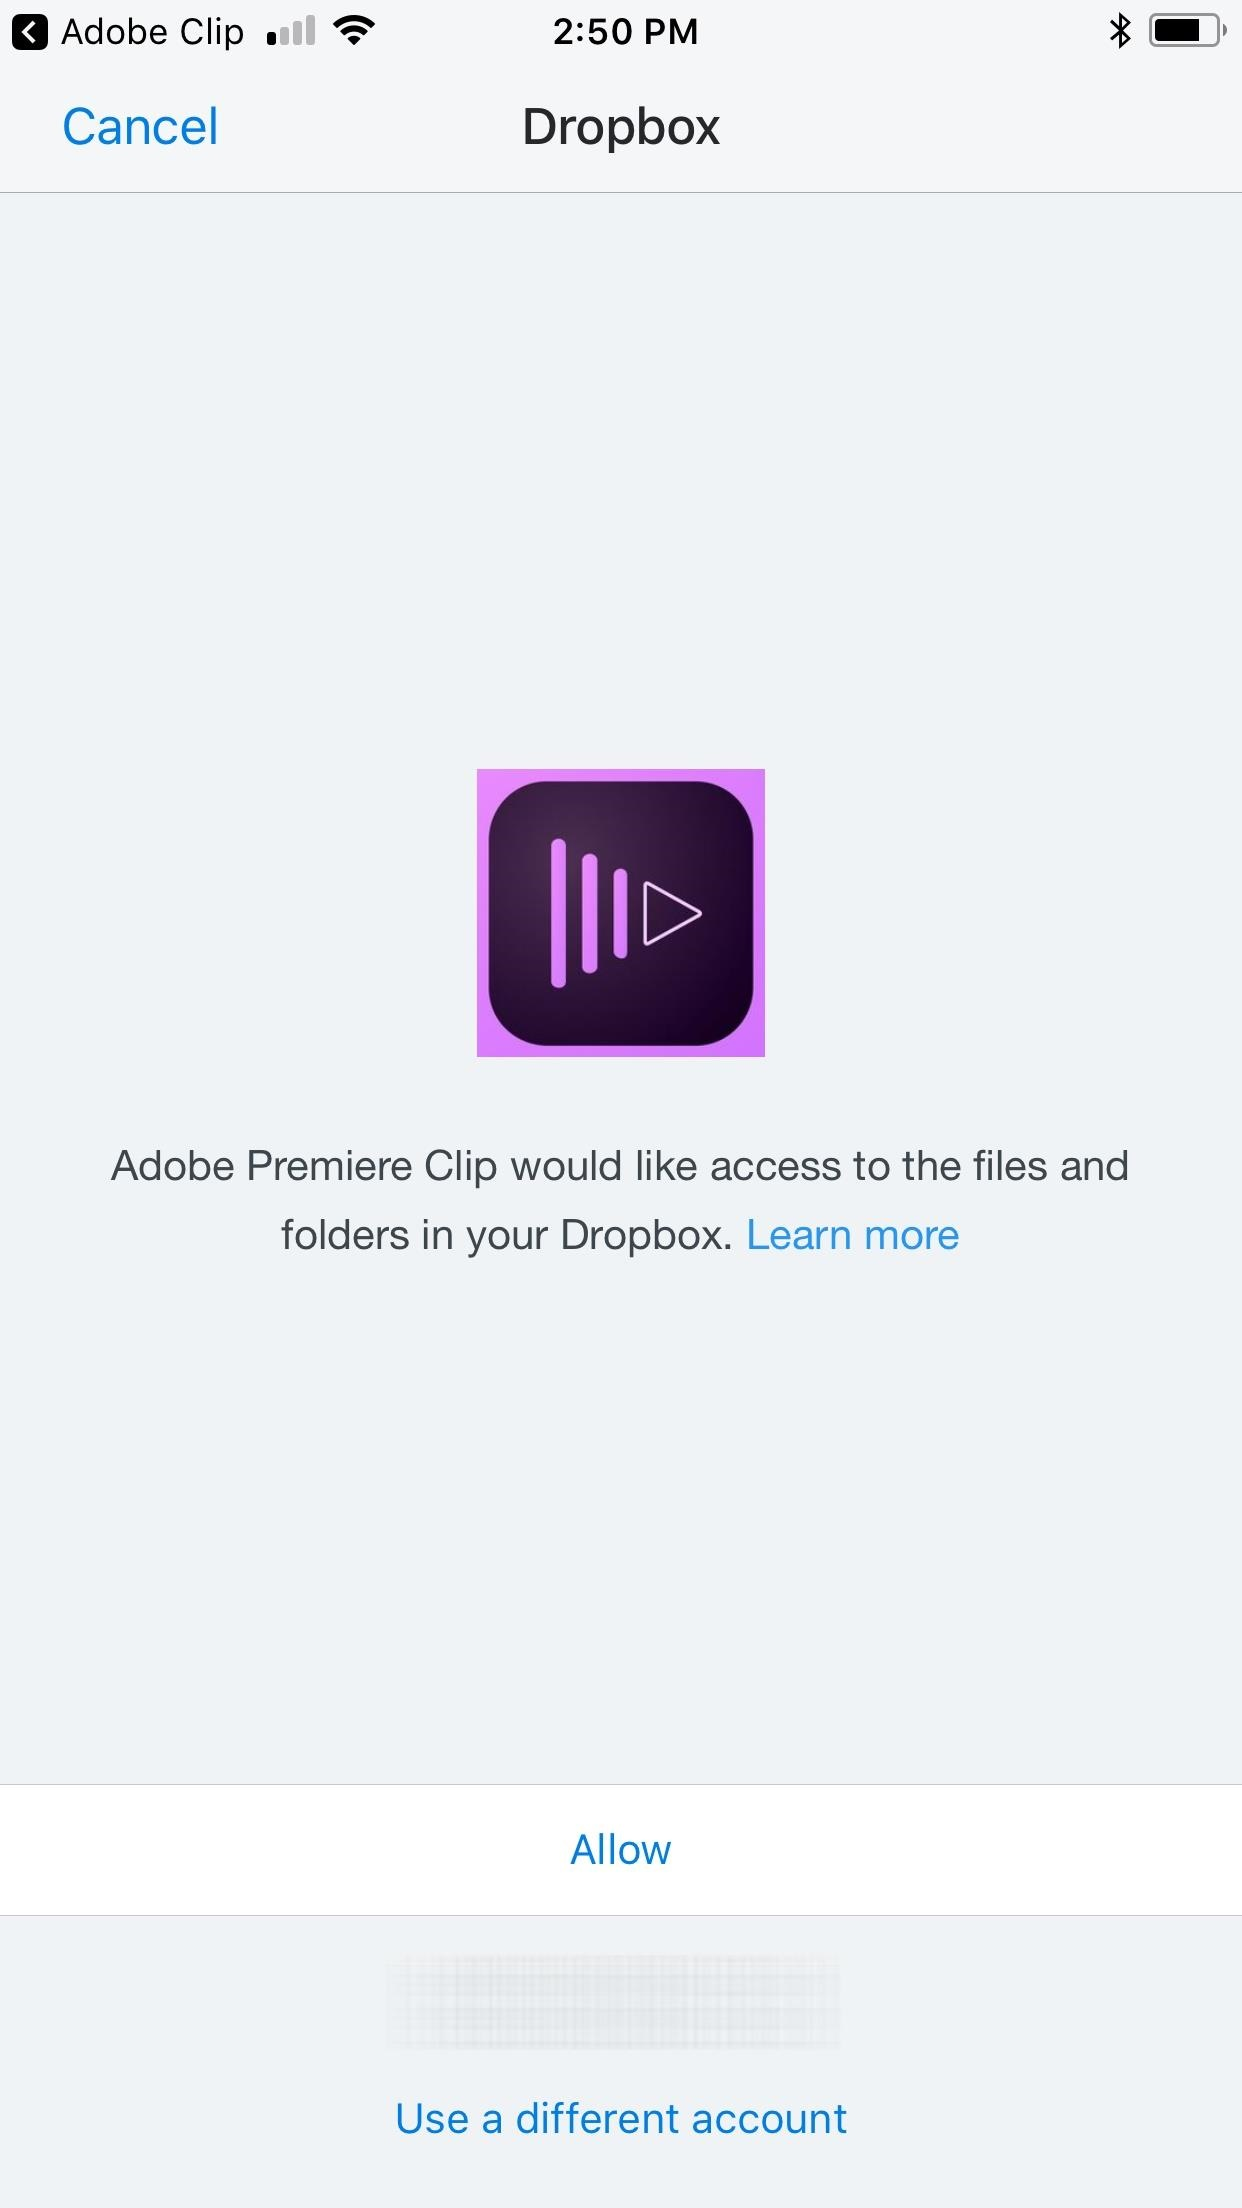 Adobe Premiere Clip 101: How to Save & Share Your Edited